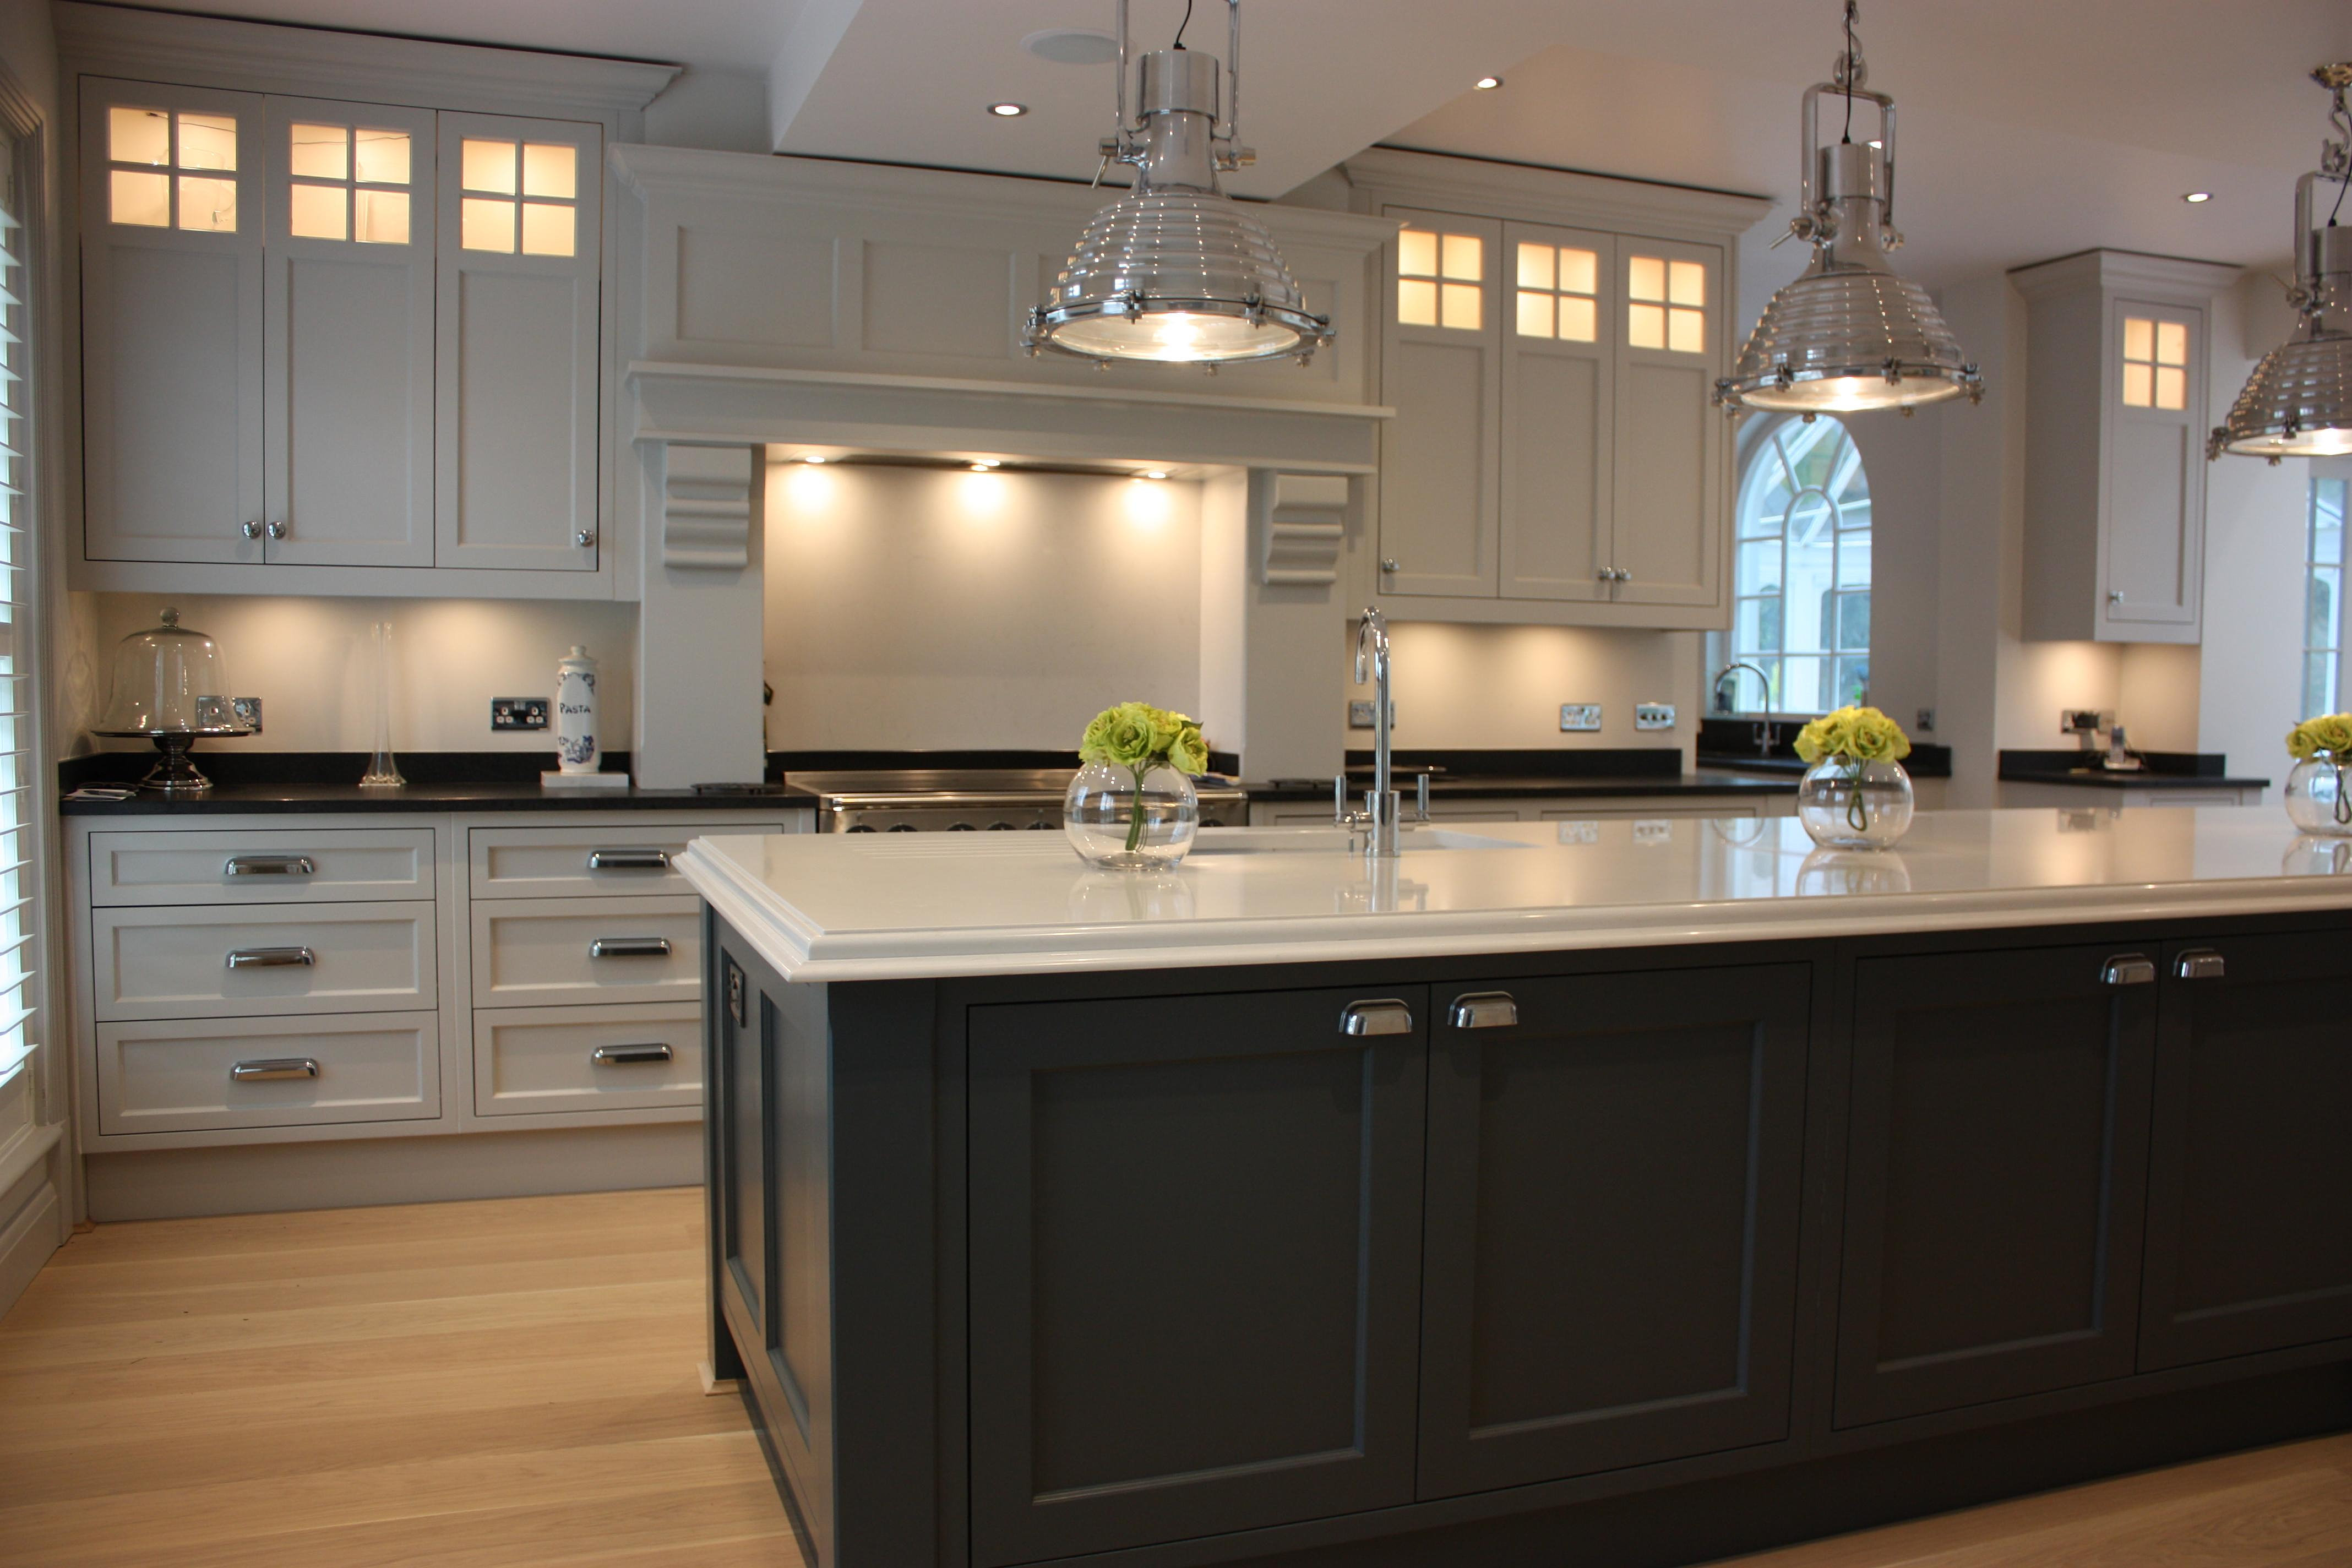 bespoke kitchen designs tmb designs bespoke kitchens 1591